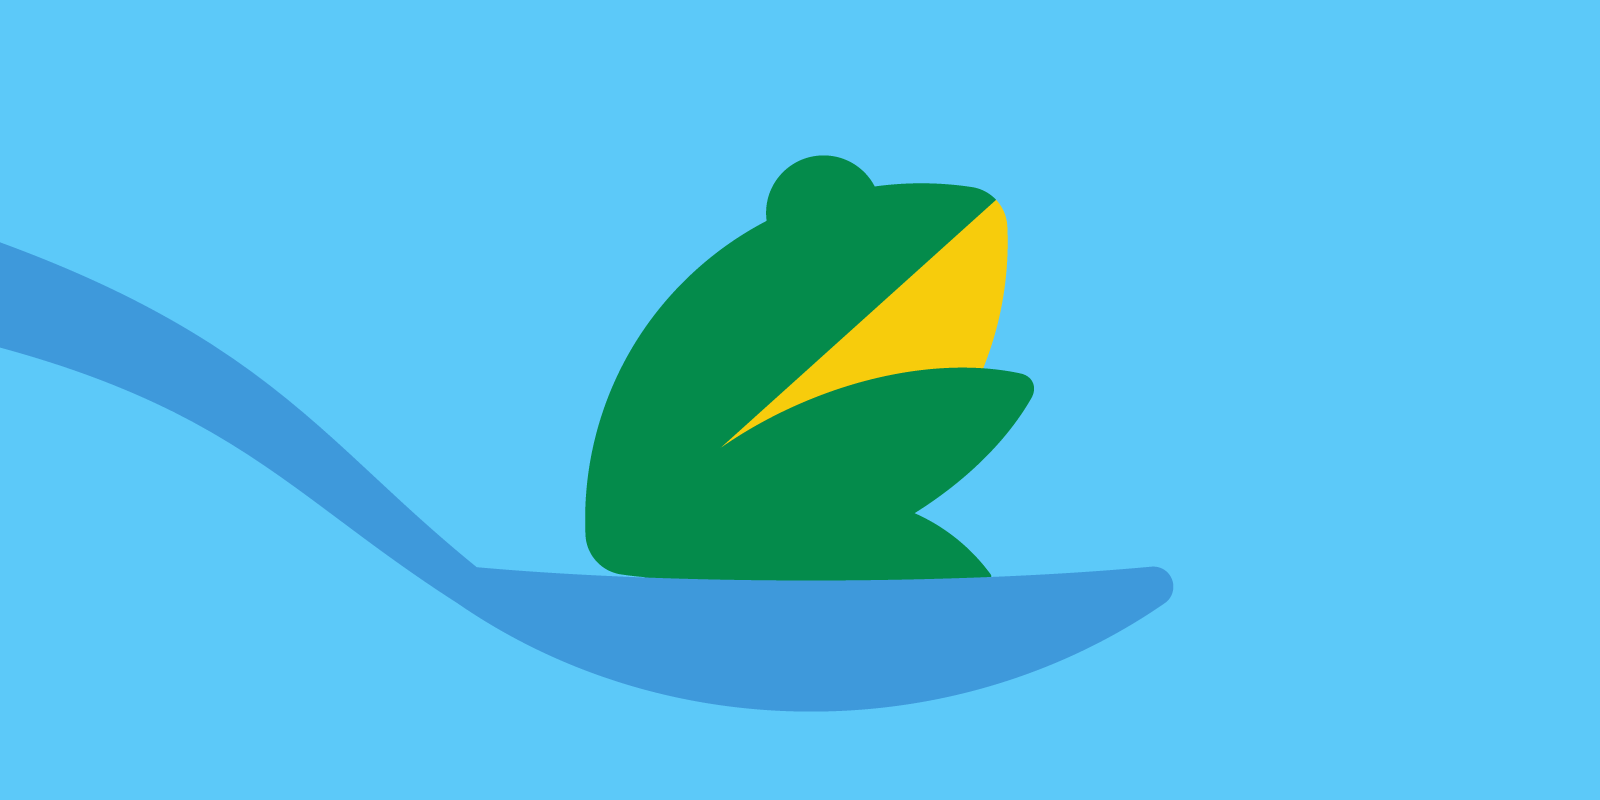 graphic-image-of-frog-in-spoon